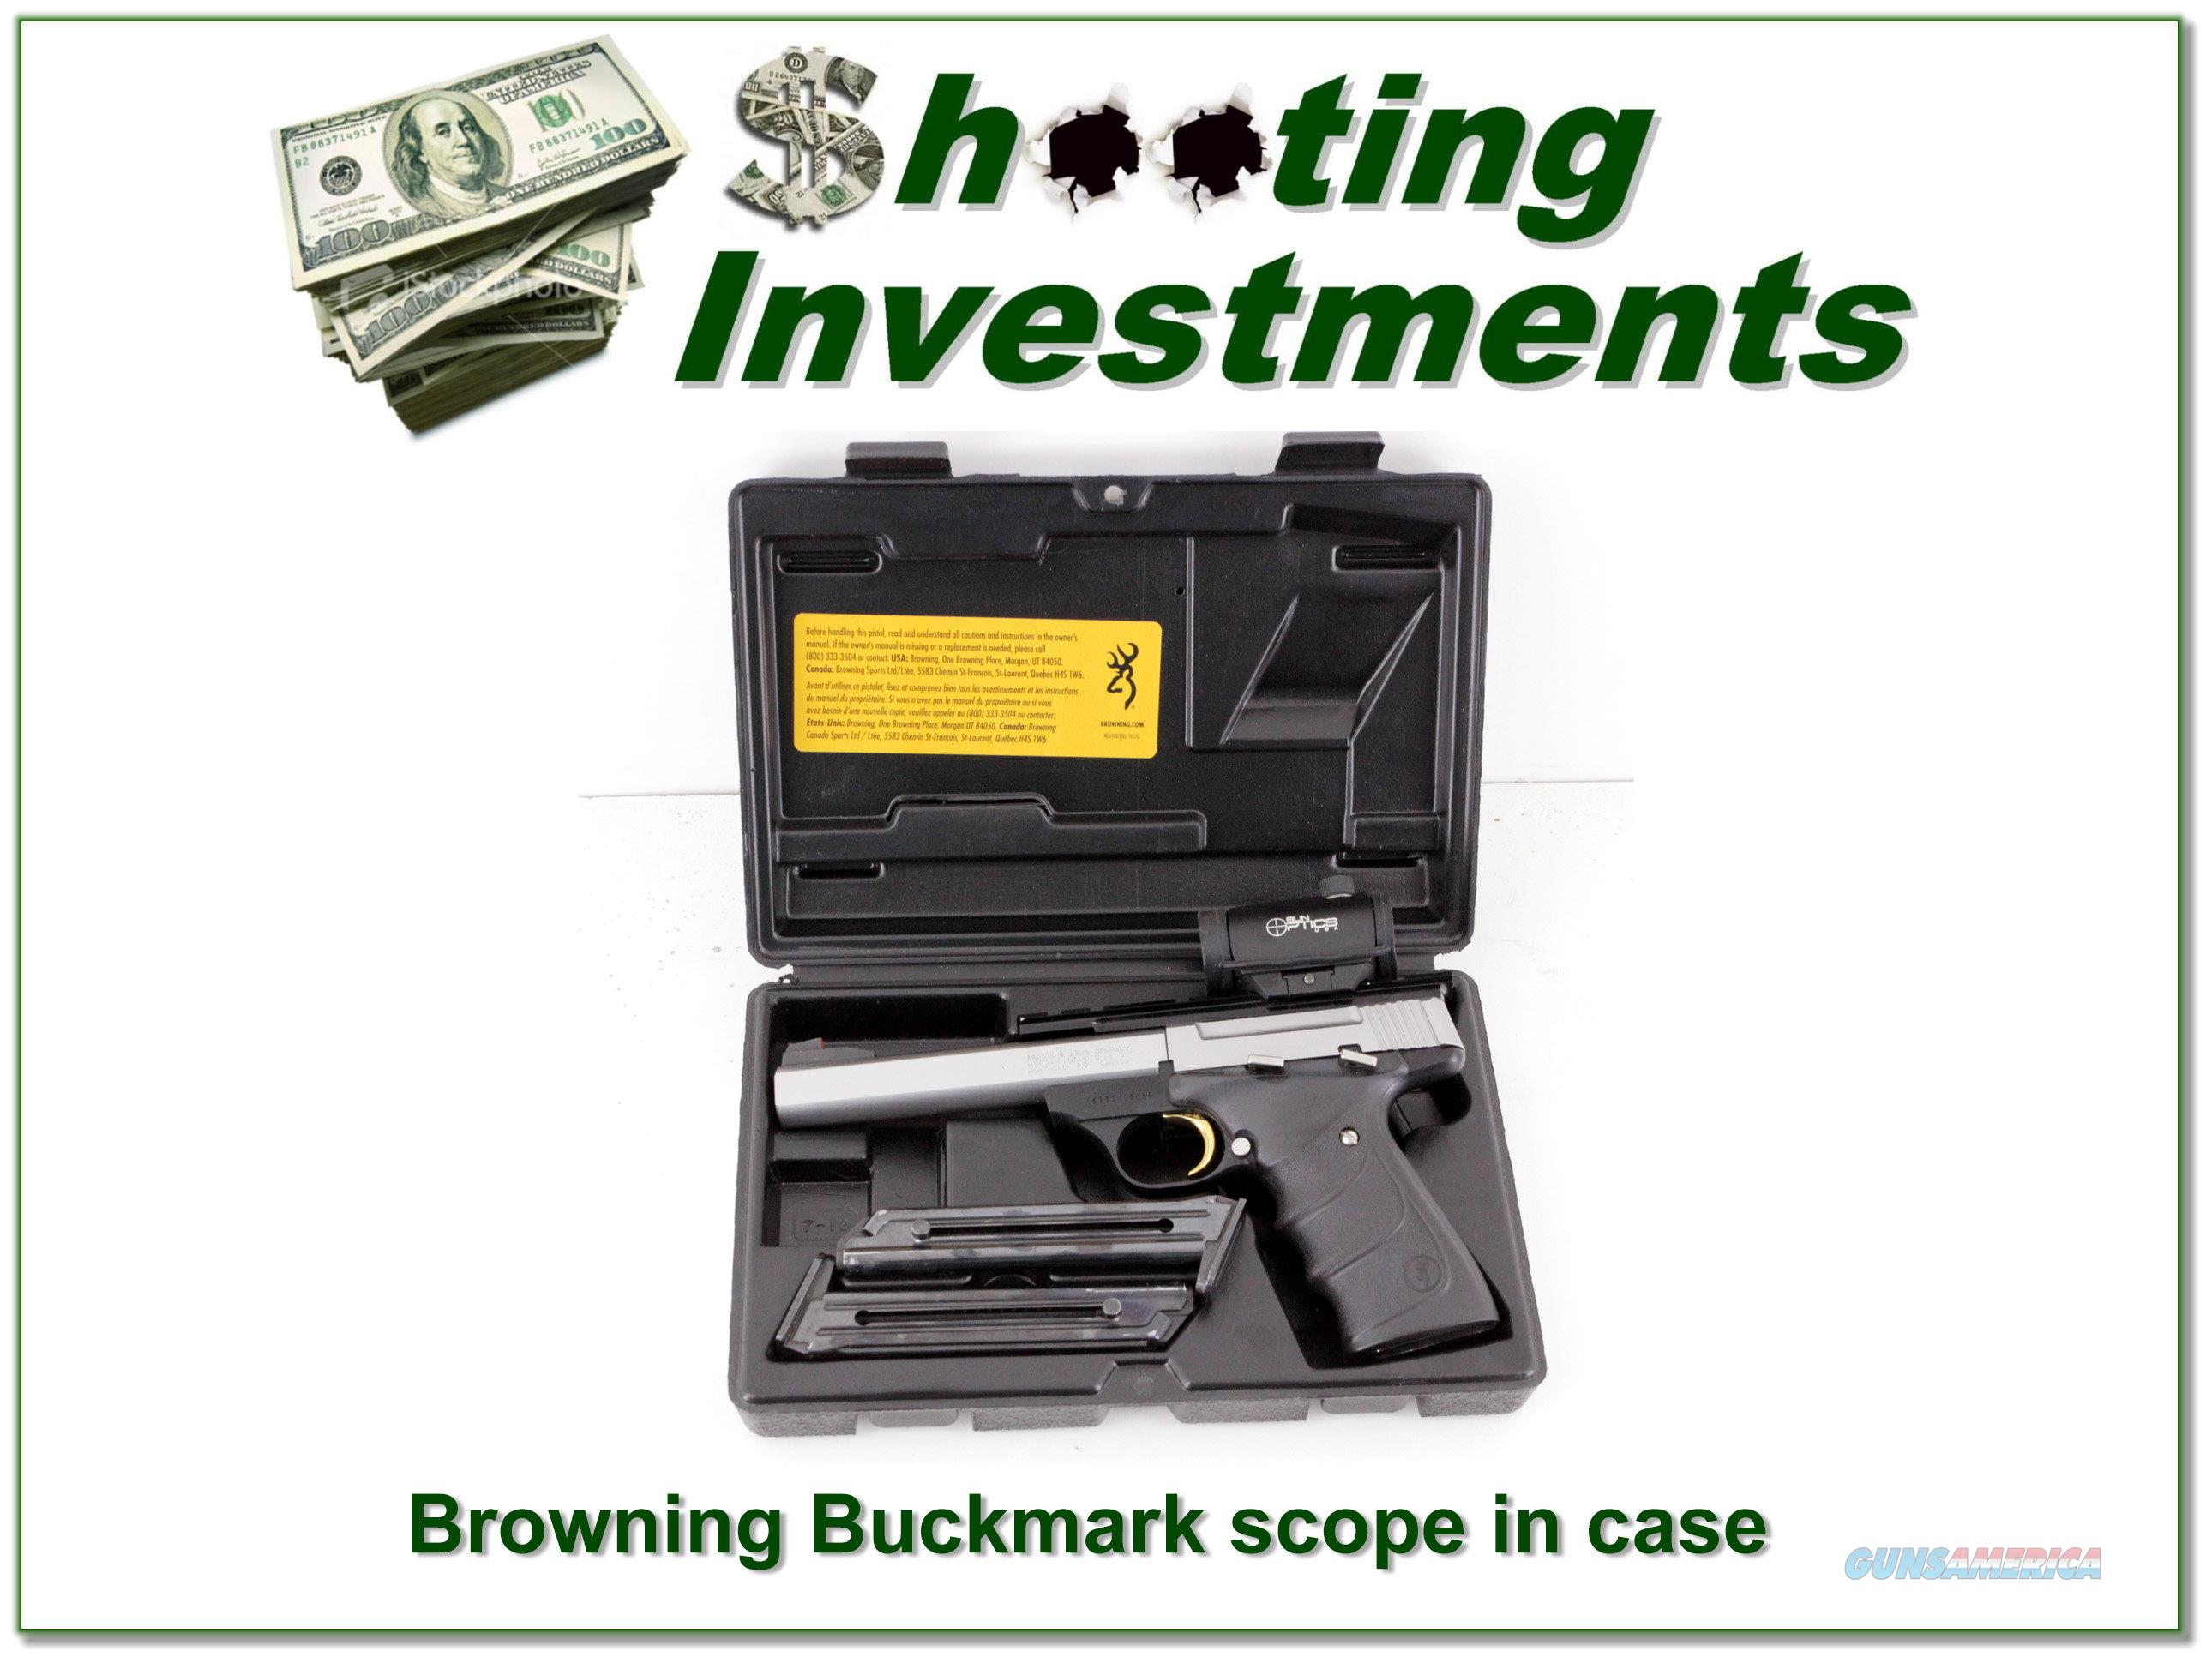 Browning Buck Mark 5.5in stainless target barrel scope  Guns > Pistols > Browning Pistols > Buckmark